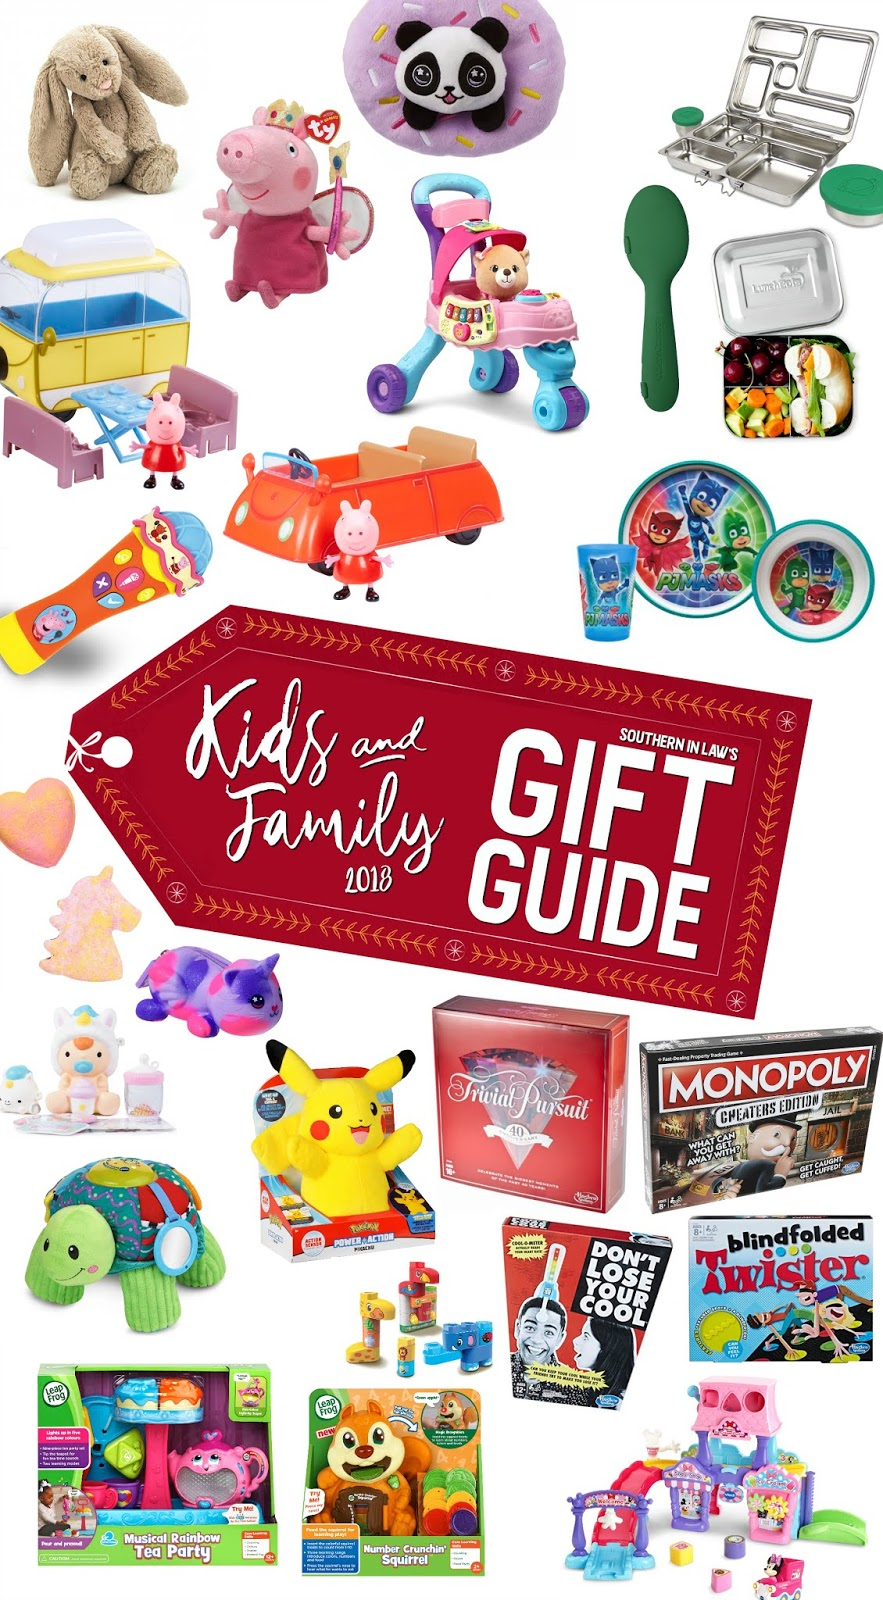 the best christmas gifts for kids and family this year